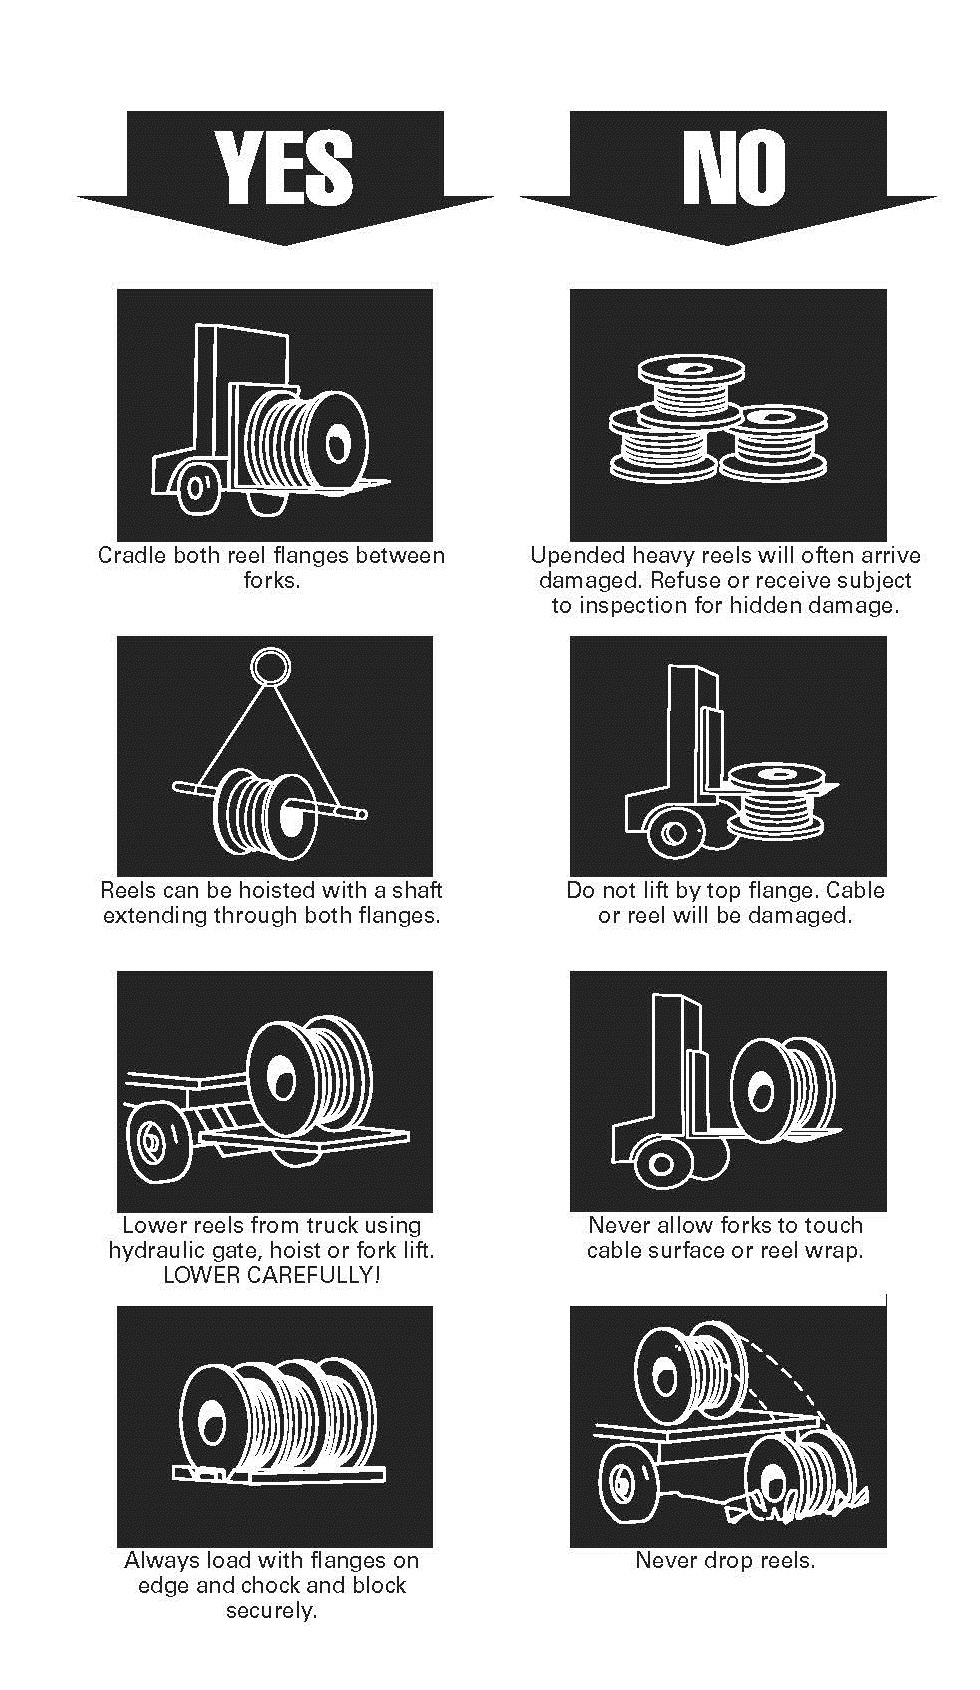 Recommended Reel Handling Practices - How to Handle Cable Reels